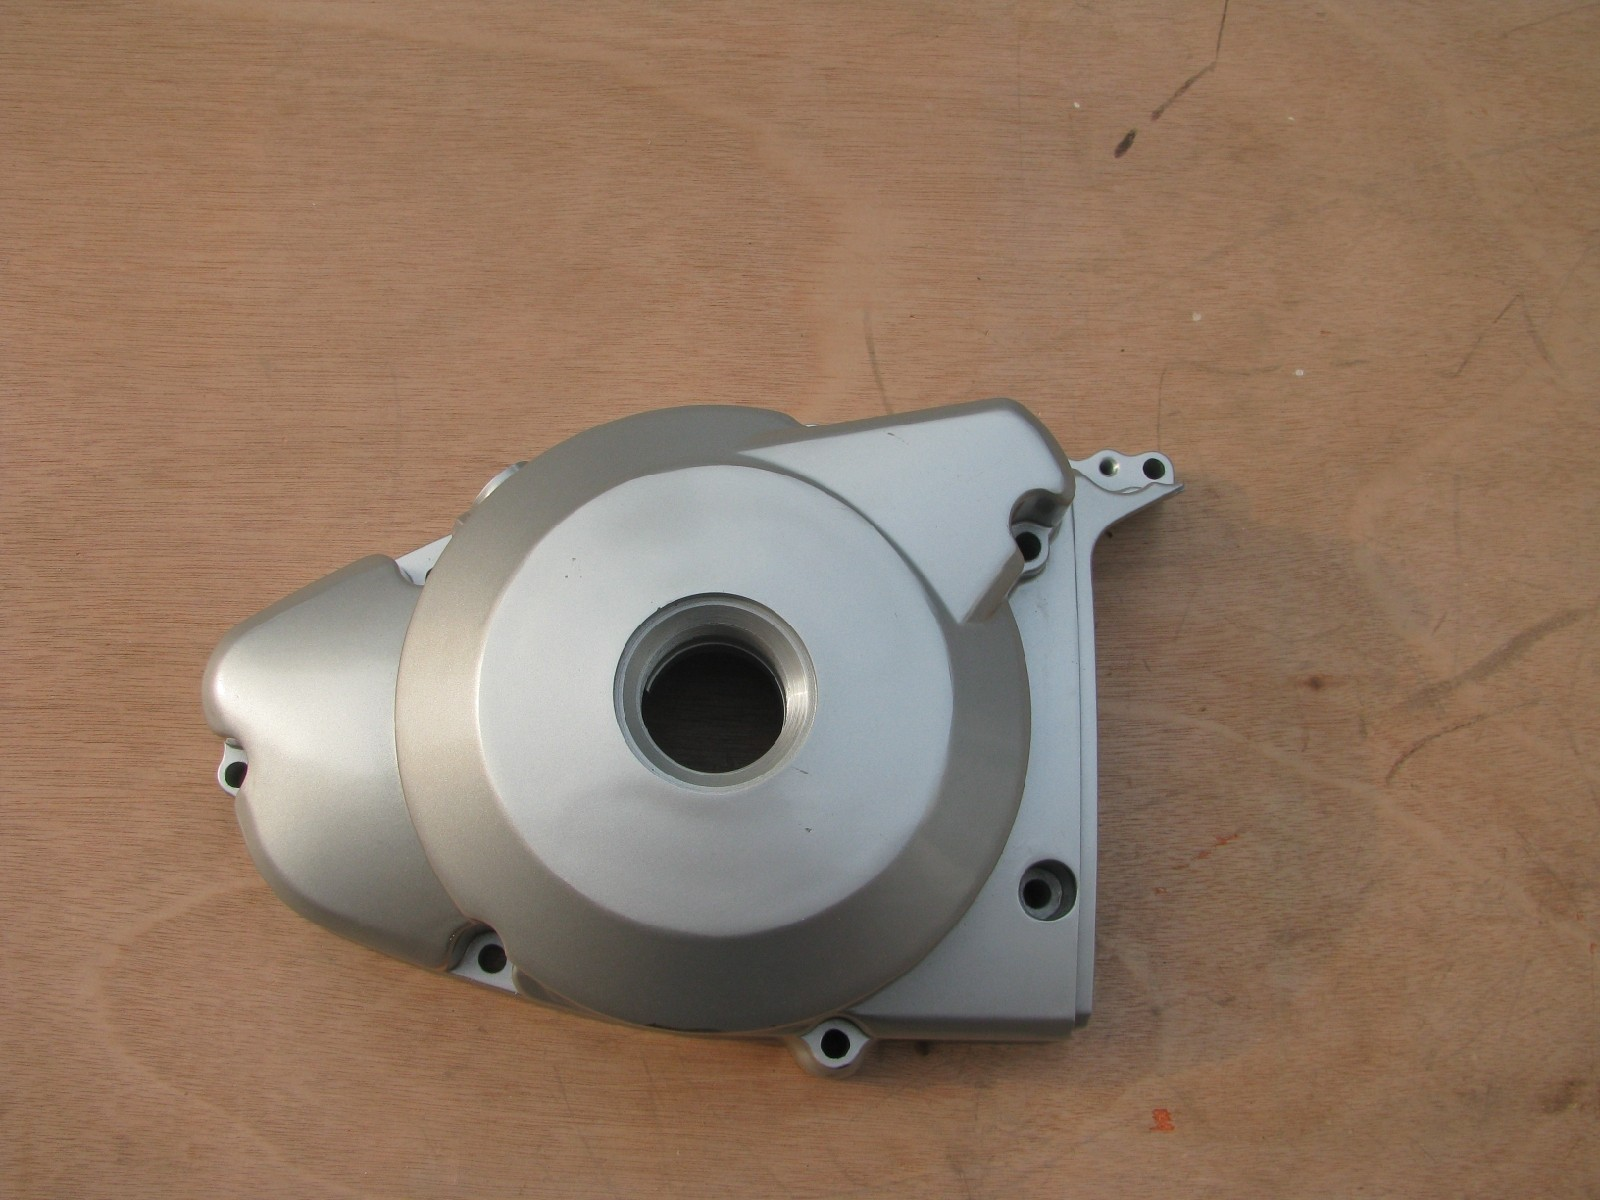 Free shipping for suzuki motorcycle accessories qm250gy magnetic motor cover 250cc parts qingqi qm250gy engine magnet